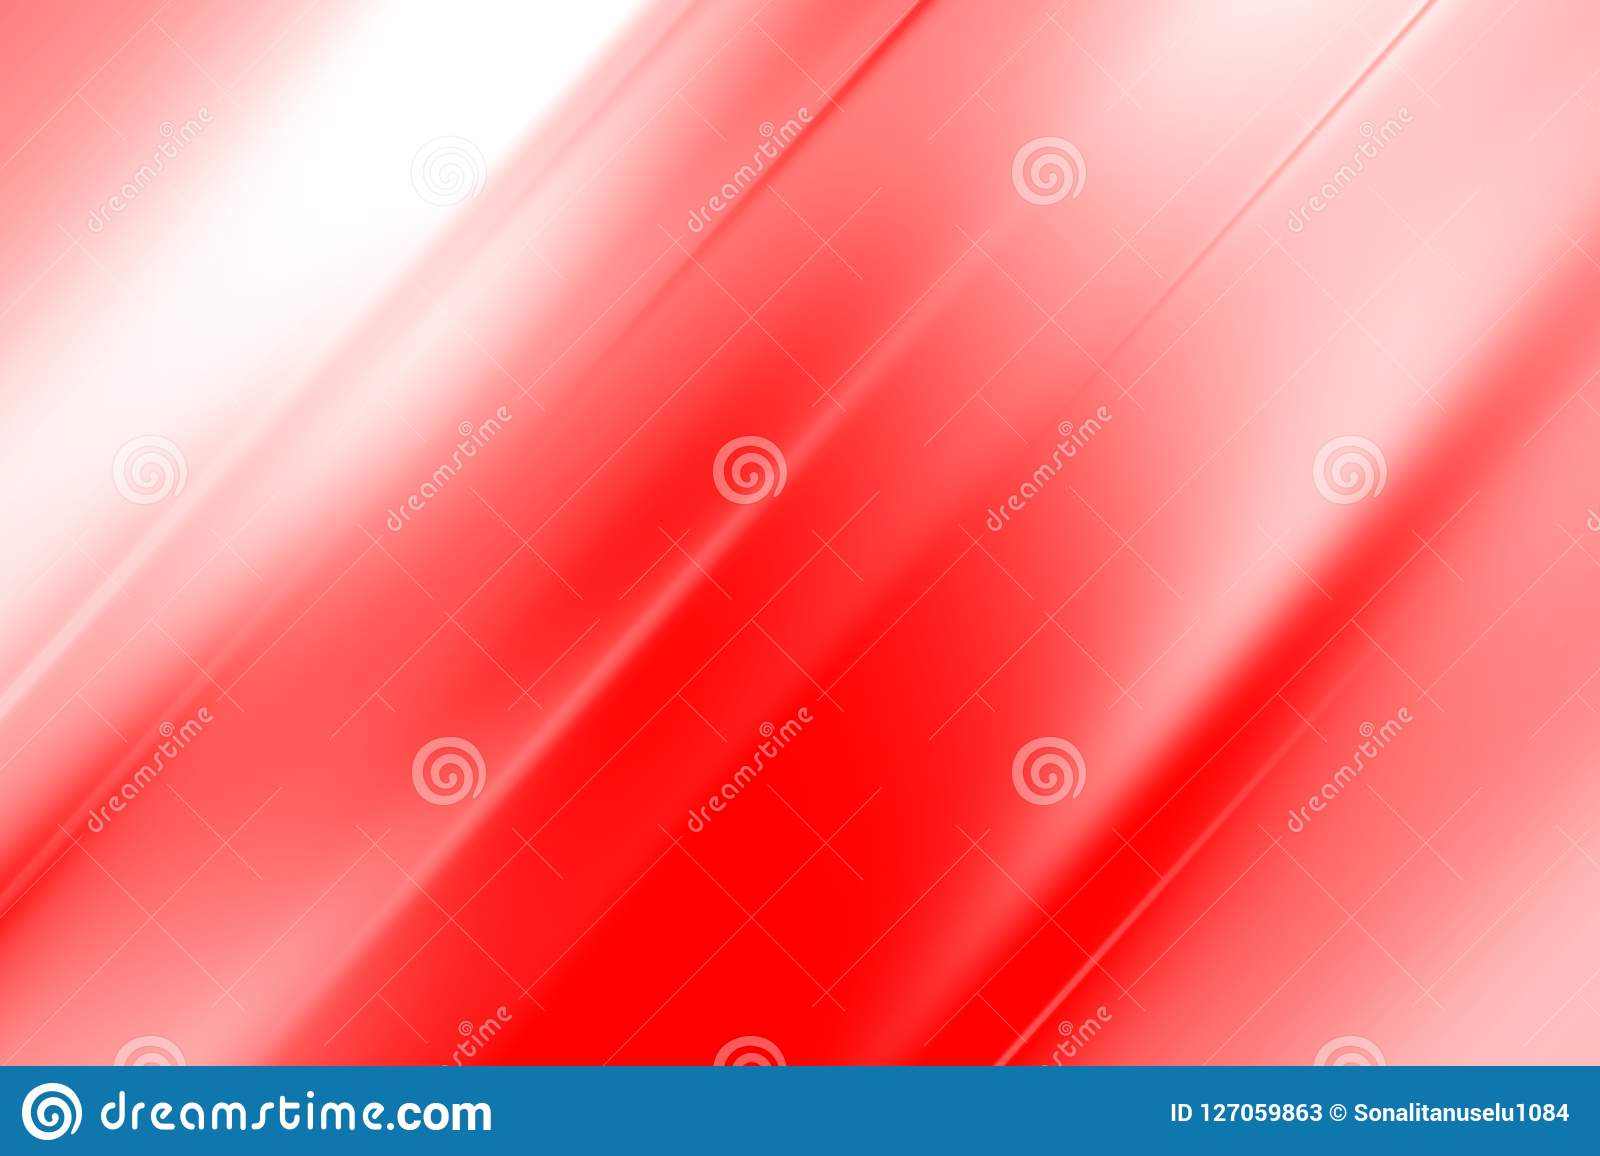 Red blur abstract background vector design.